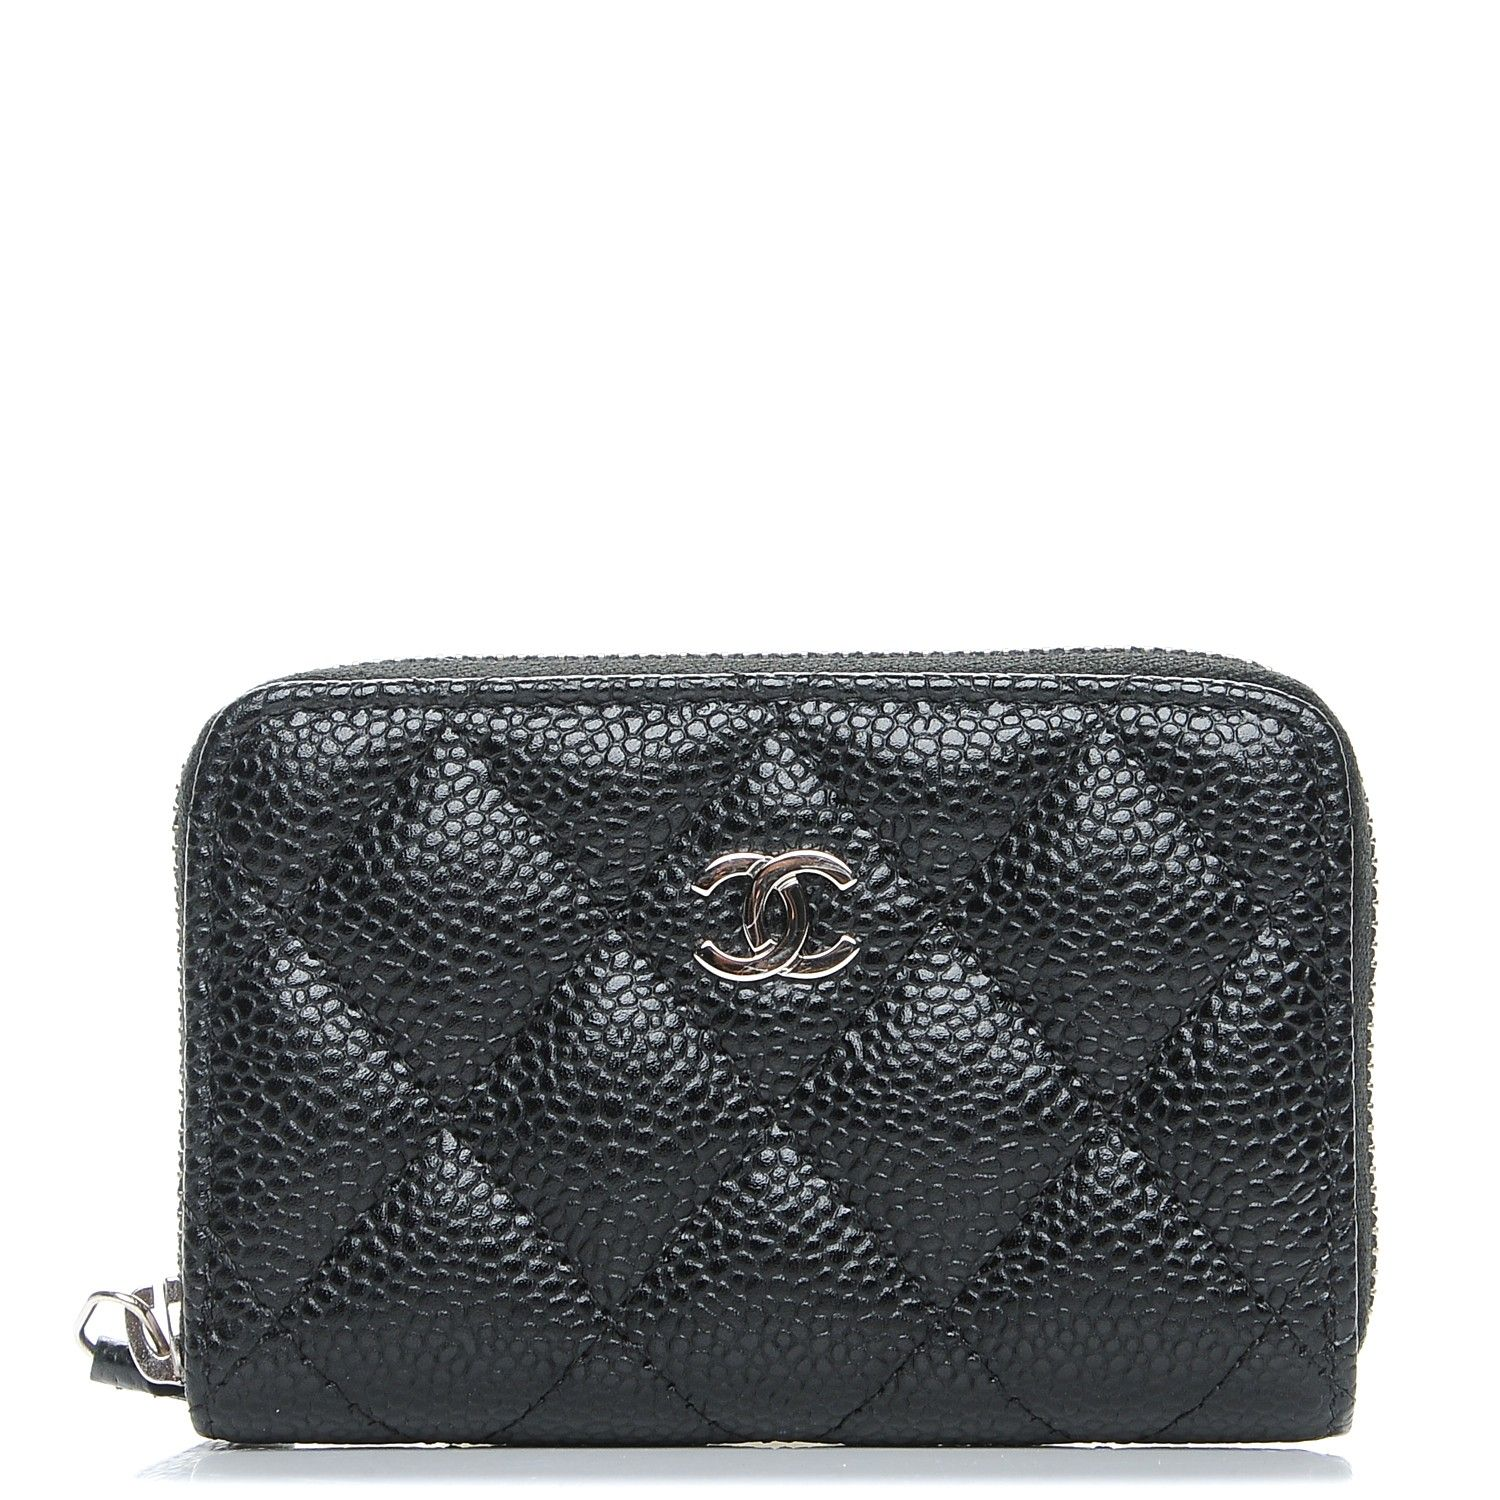 40d2b8127b5447 This is an authentic CHANEL Caviar Quilted Zip Coin Purse in Black. This  petite wallet